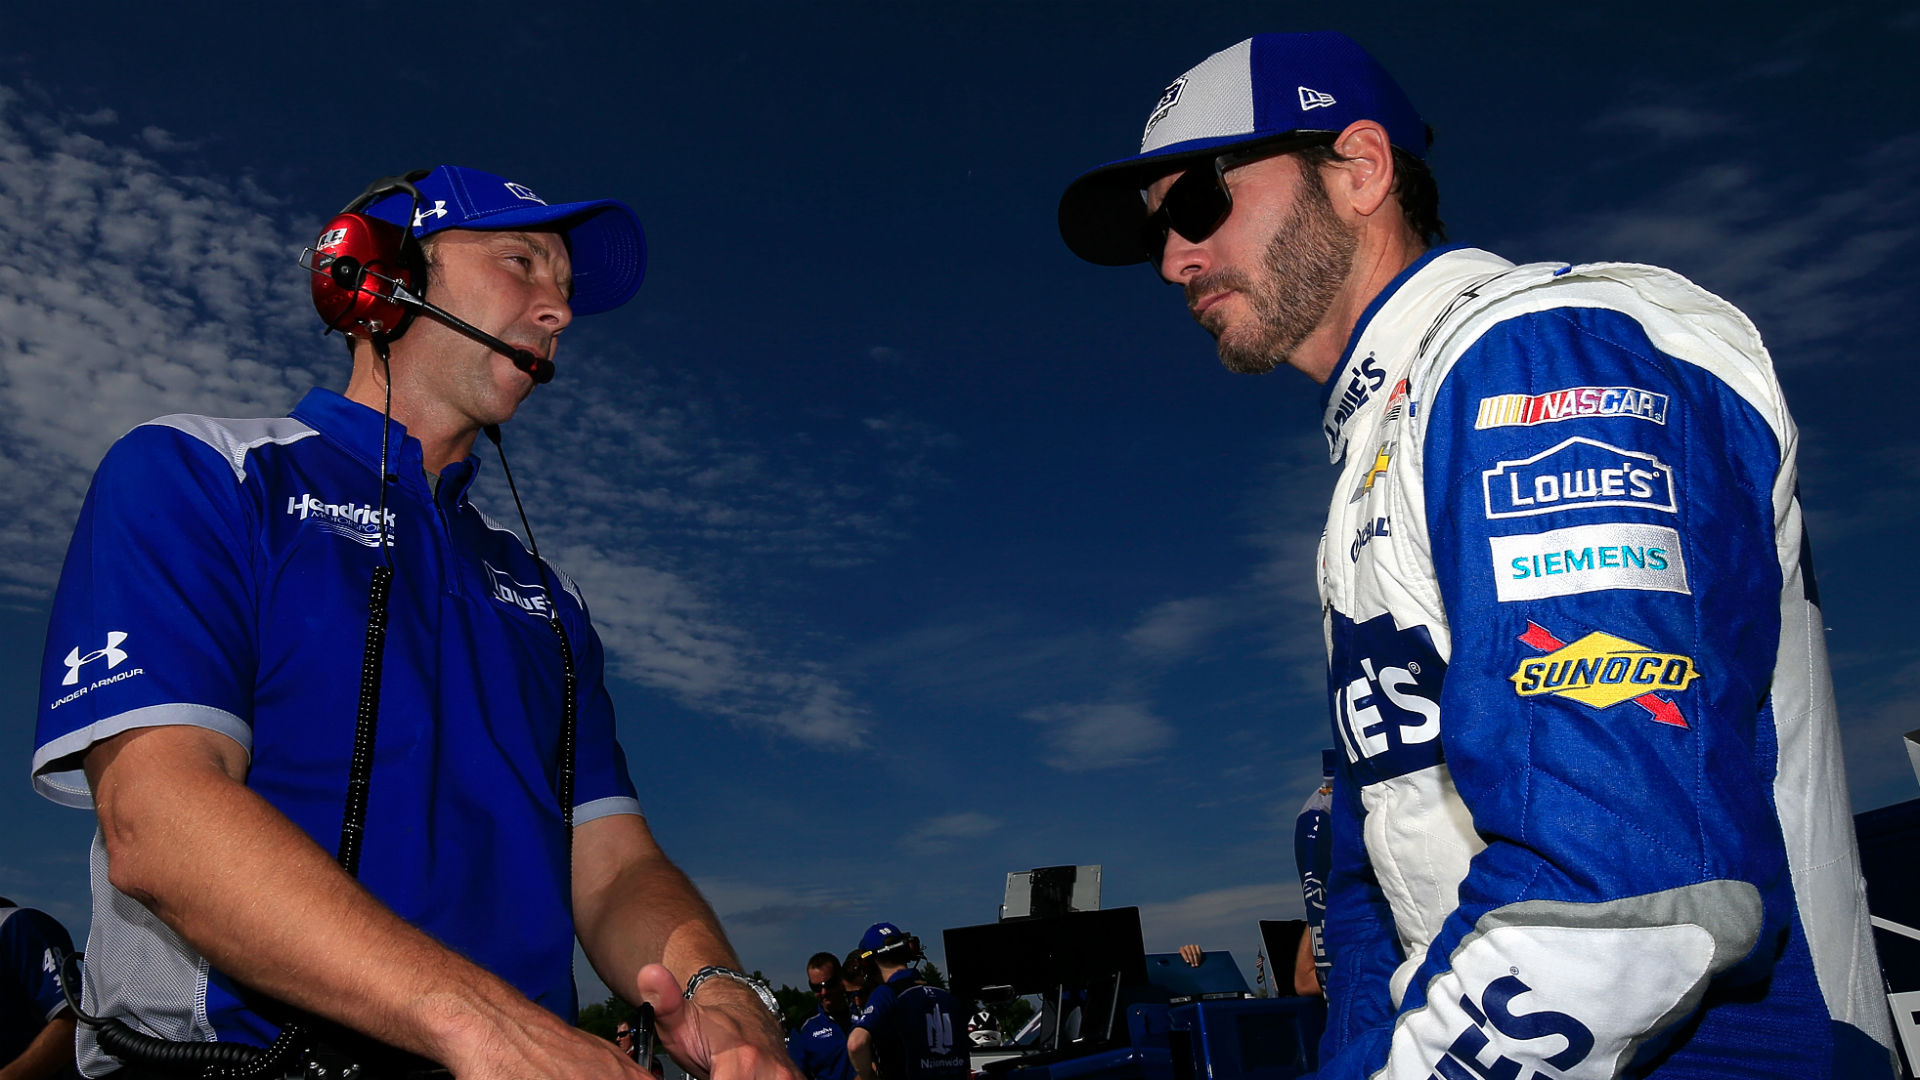 NASCAR's Knaus missing race notes after theft